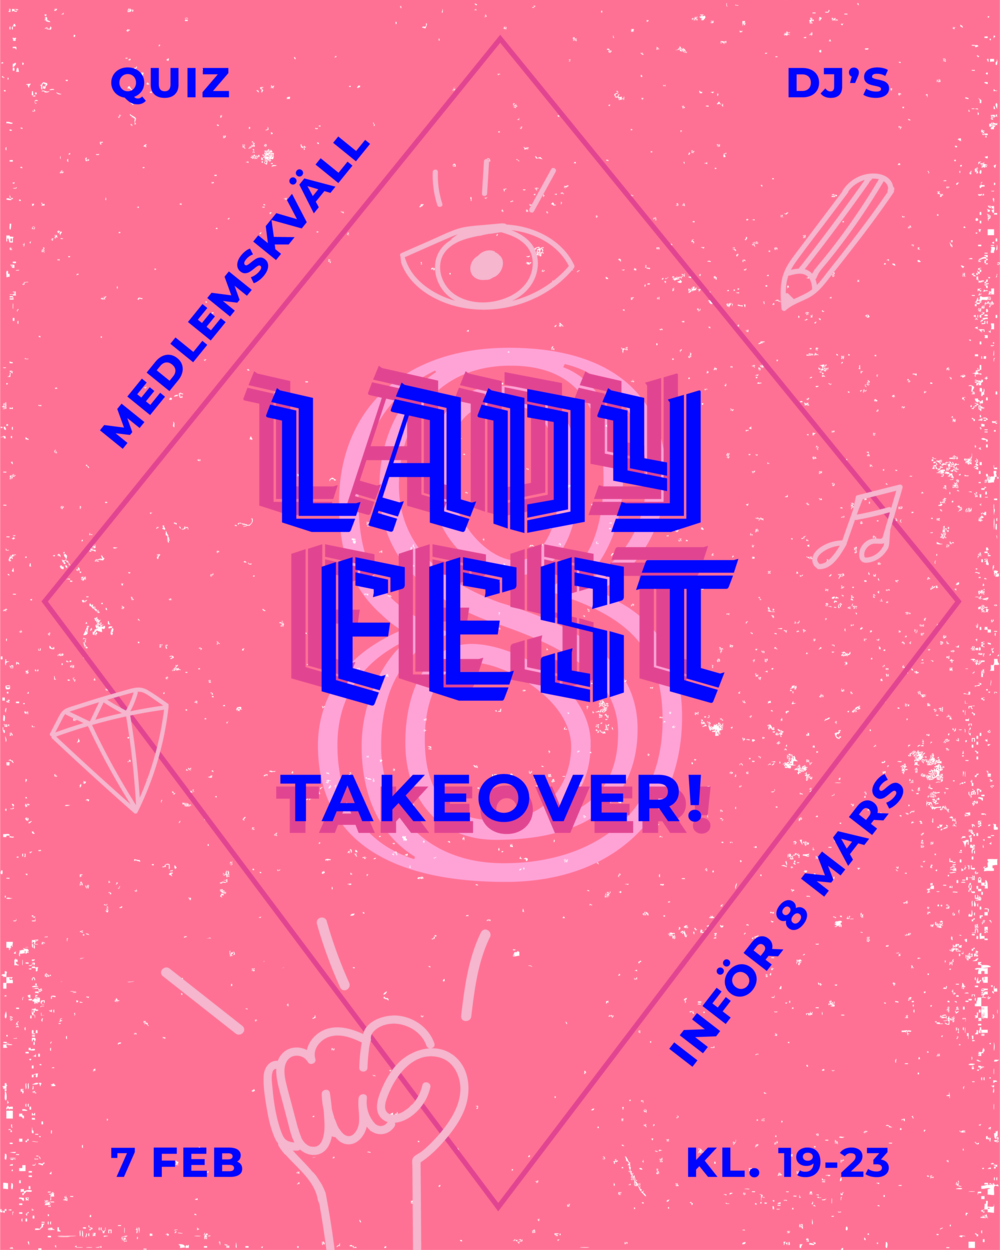 Ladyfest Takeover